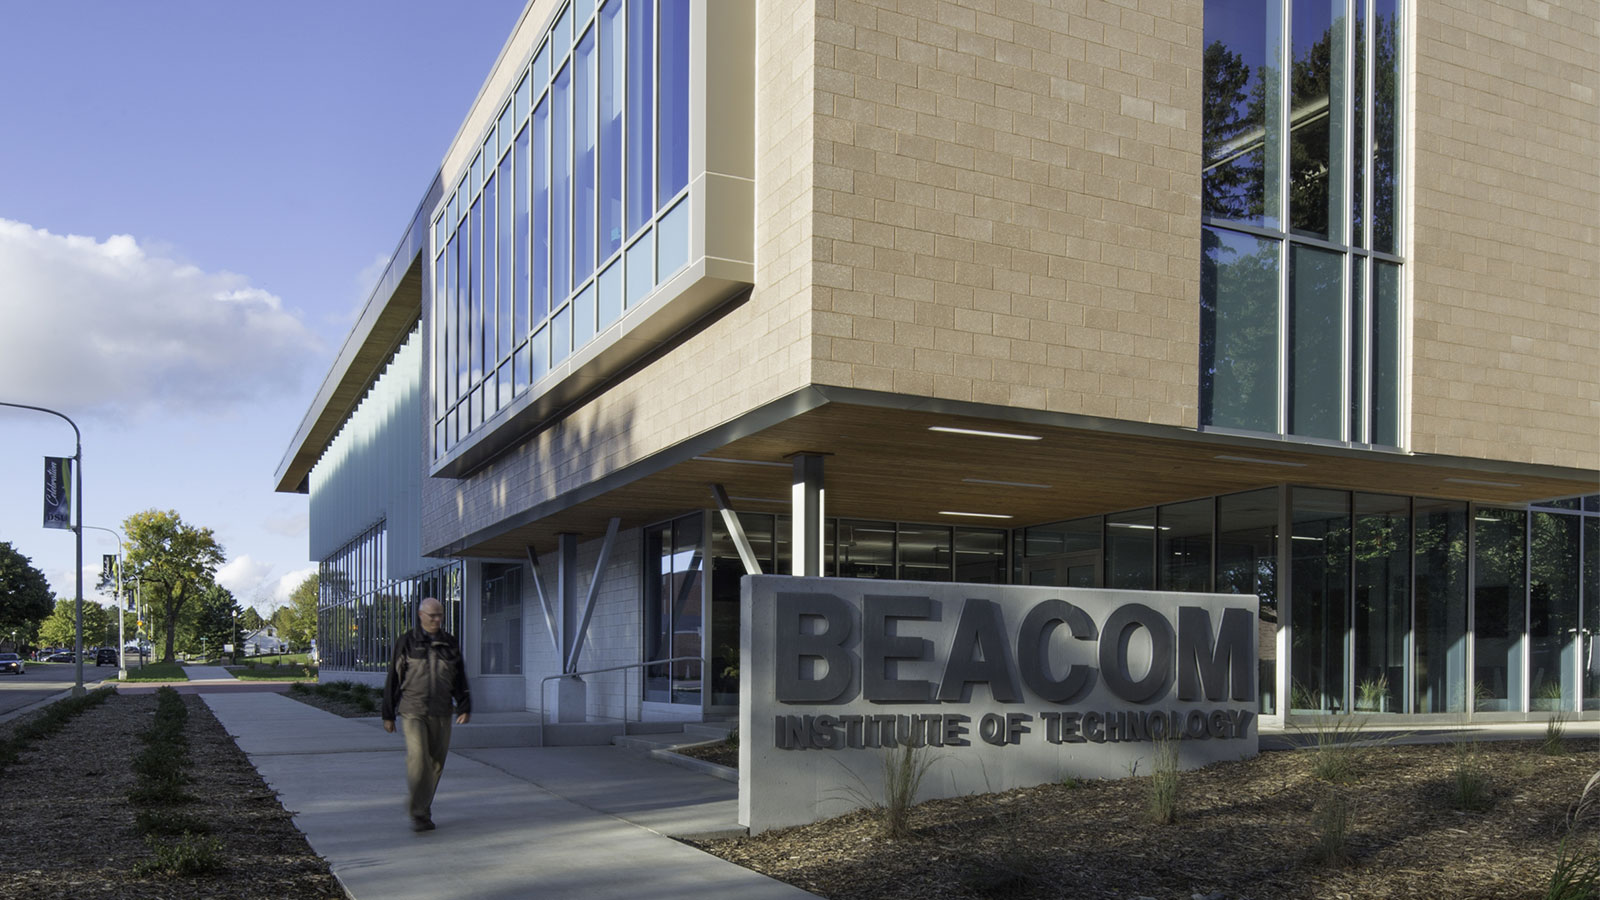 Dakota State University Beacom Institute of Technology